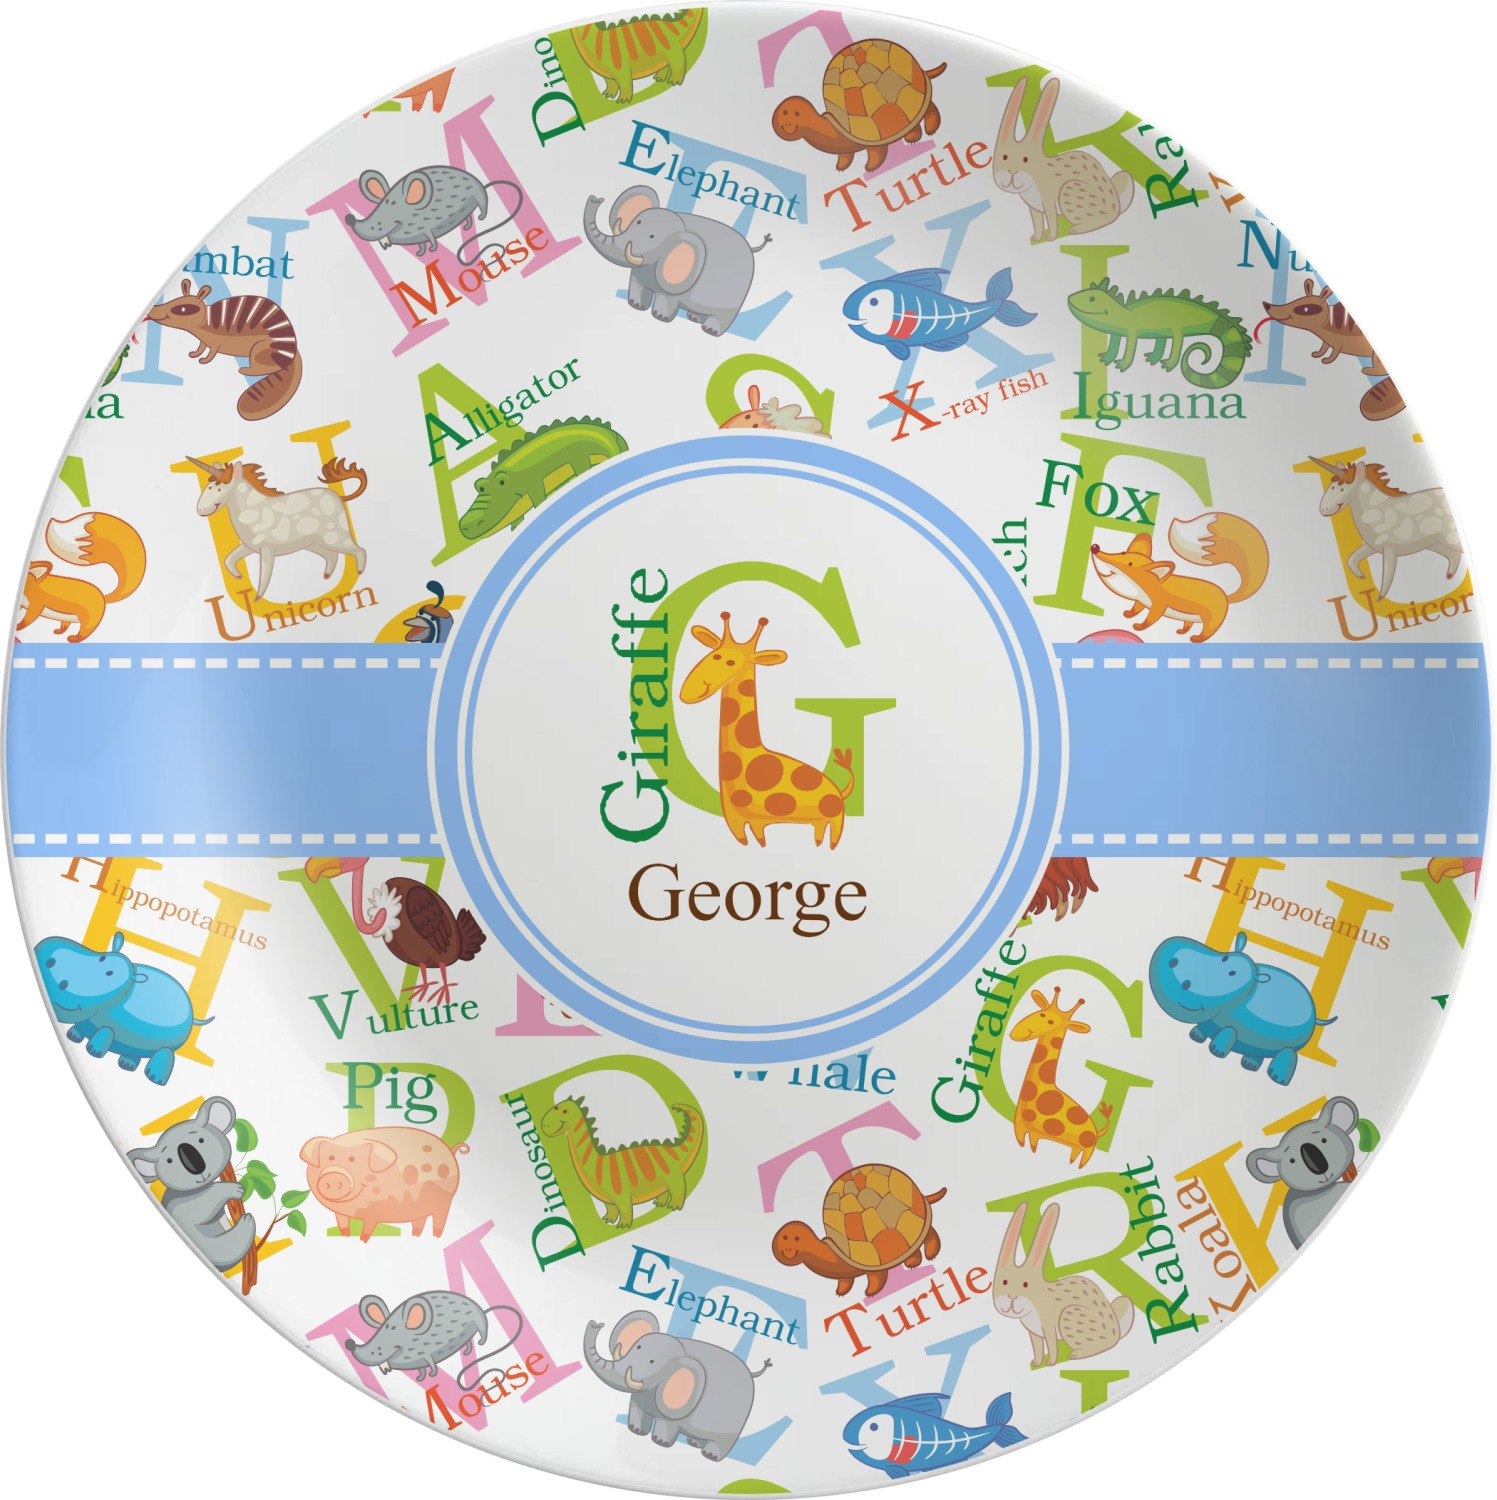 Animal Alphabet Melamine Plate (Personalized)  sc 1 st  YouCustomizeIt & Animal Alphabet Melamine Plate (Personalized) - YouCustomizeIt